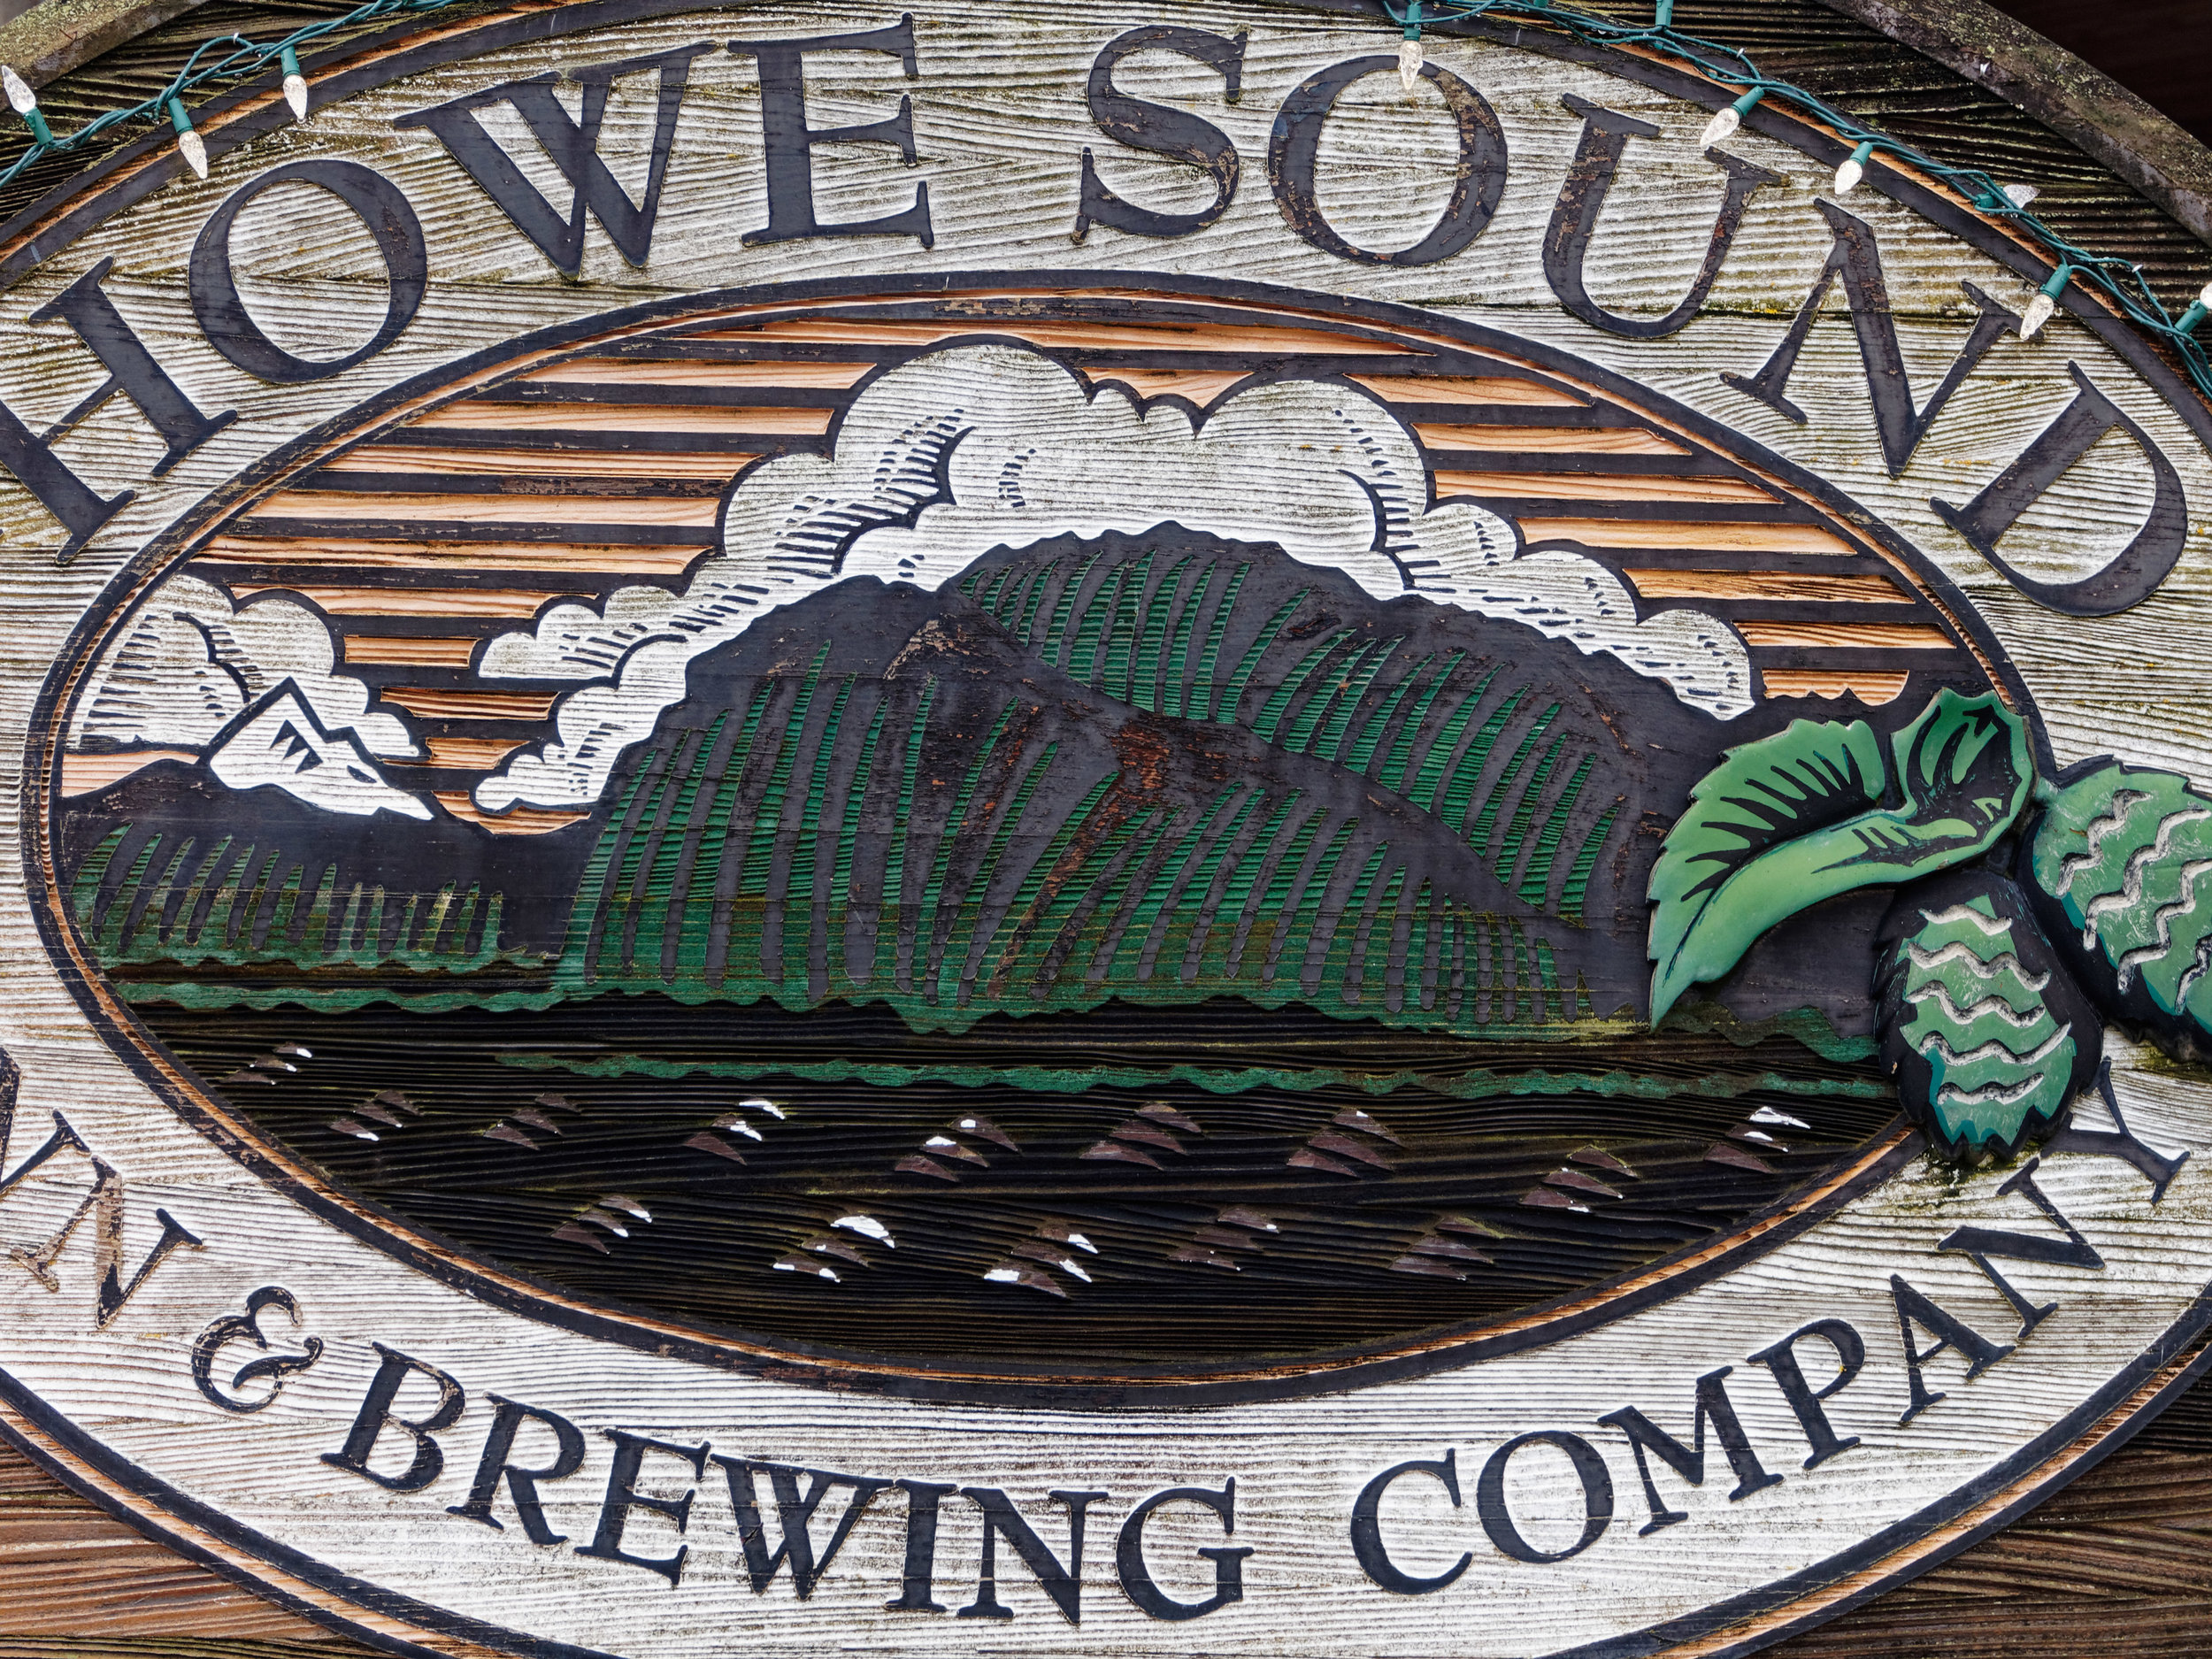 Howe Sound Brewing, Squamish